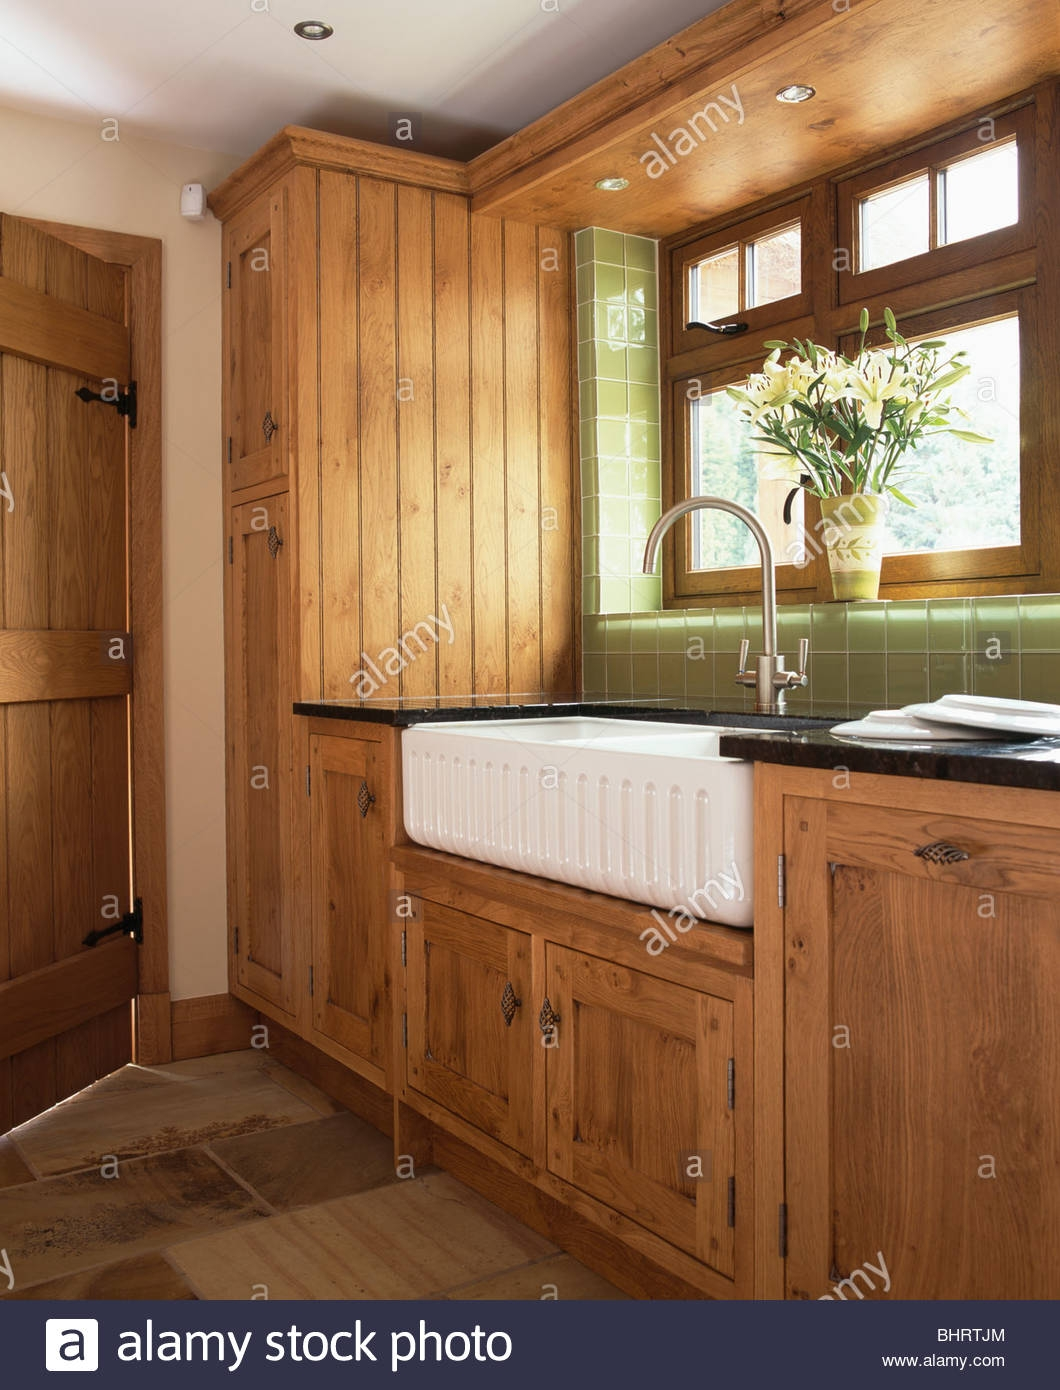 White Belfast Sink In Country Kitchen With Fitted Oak Cupboards With Regard To Oak Cupboards (#12 of 12)